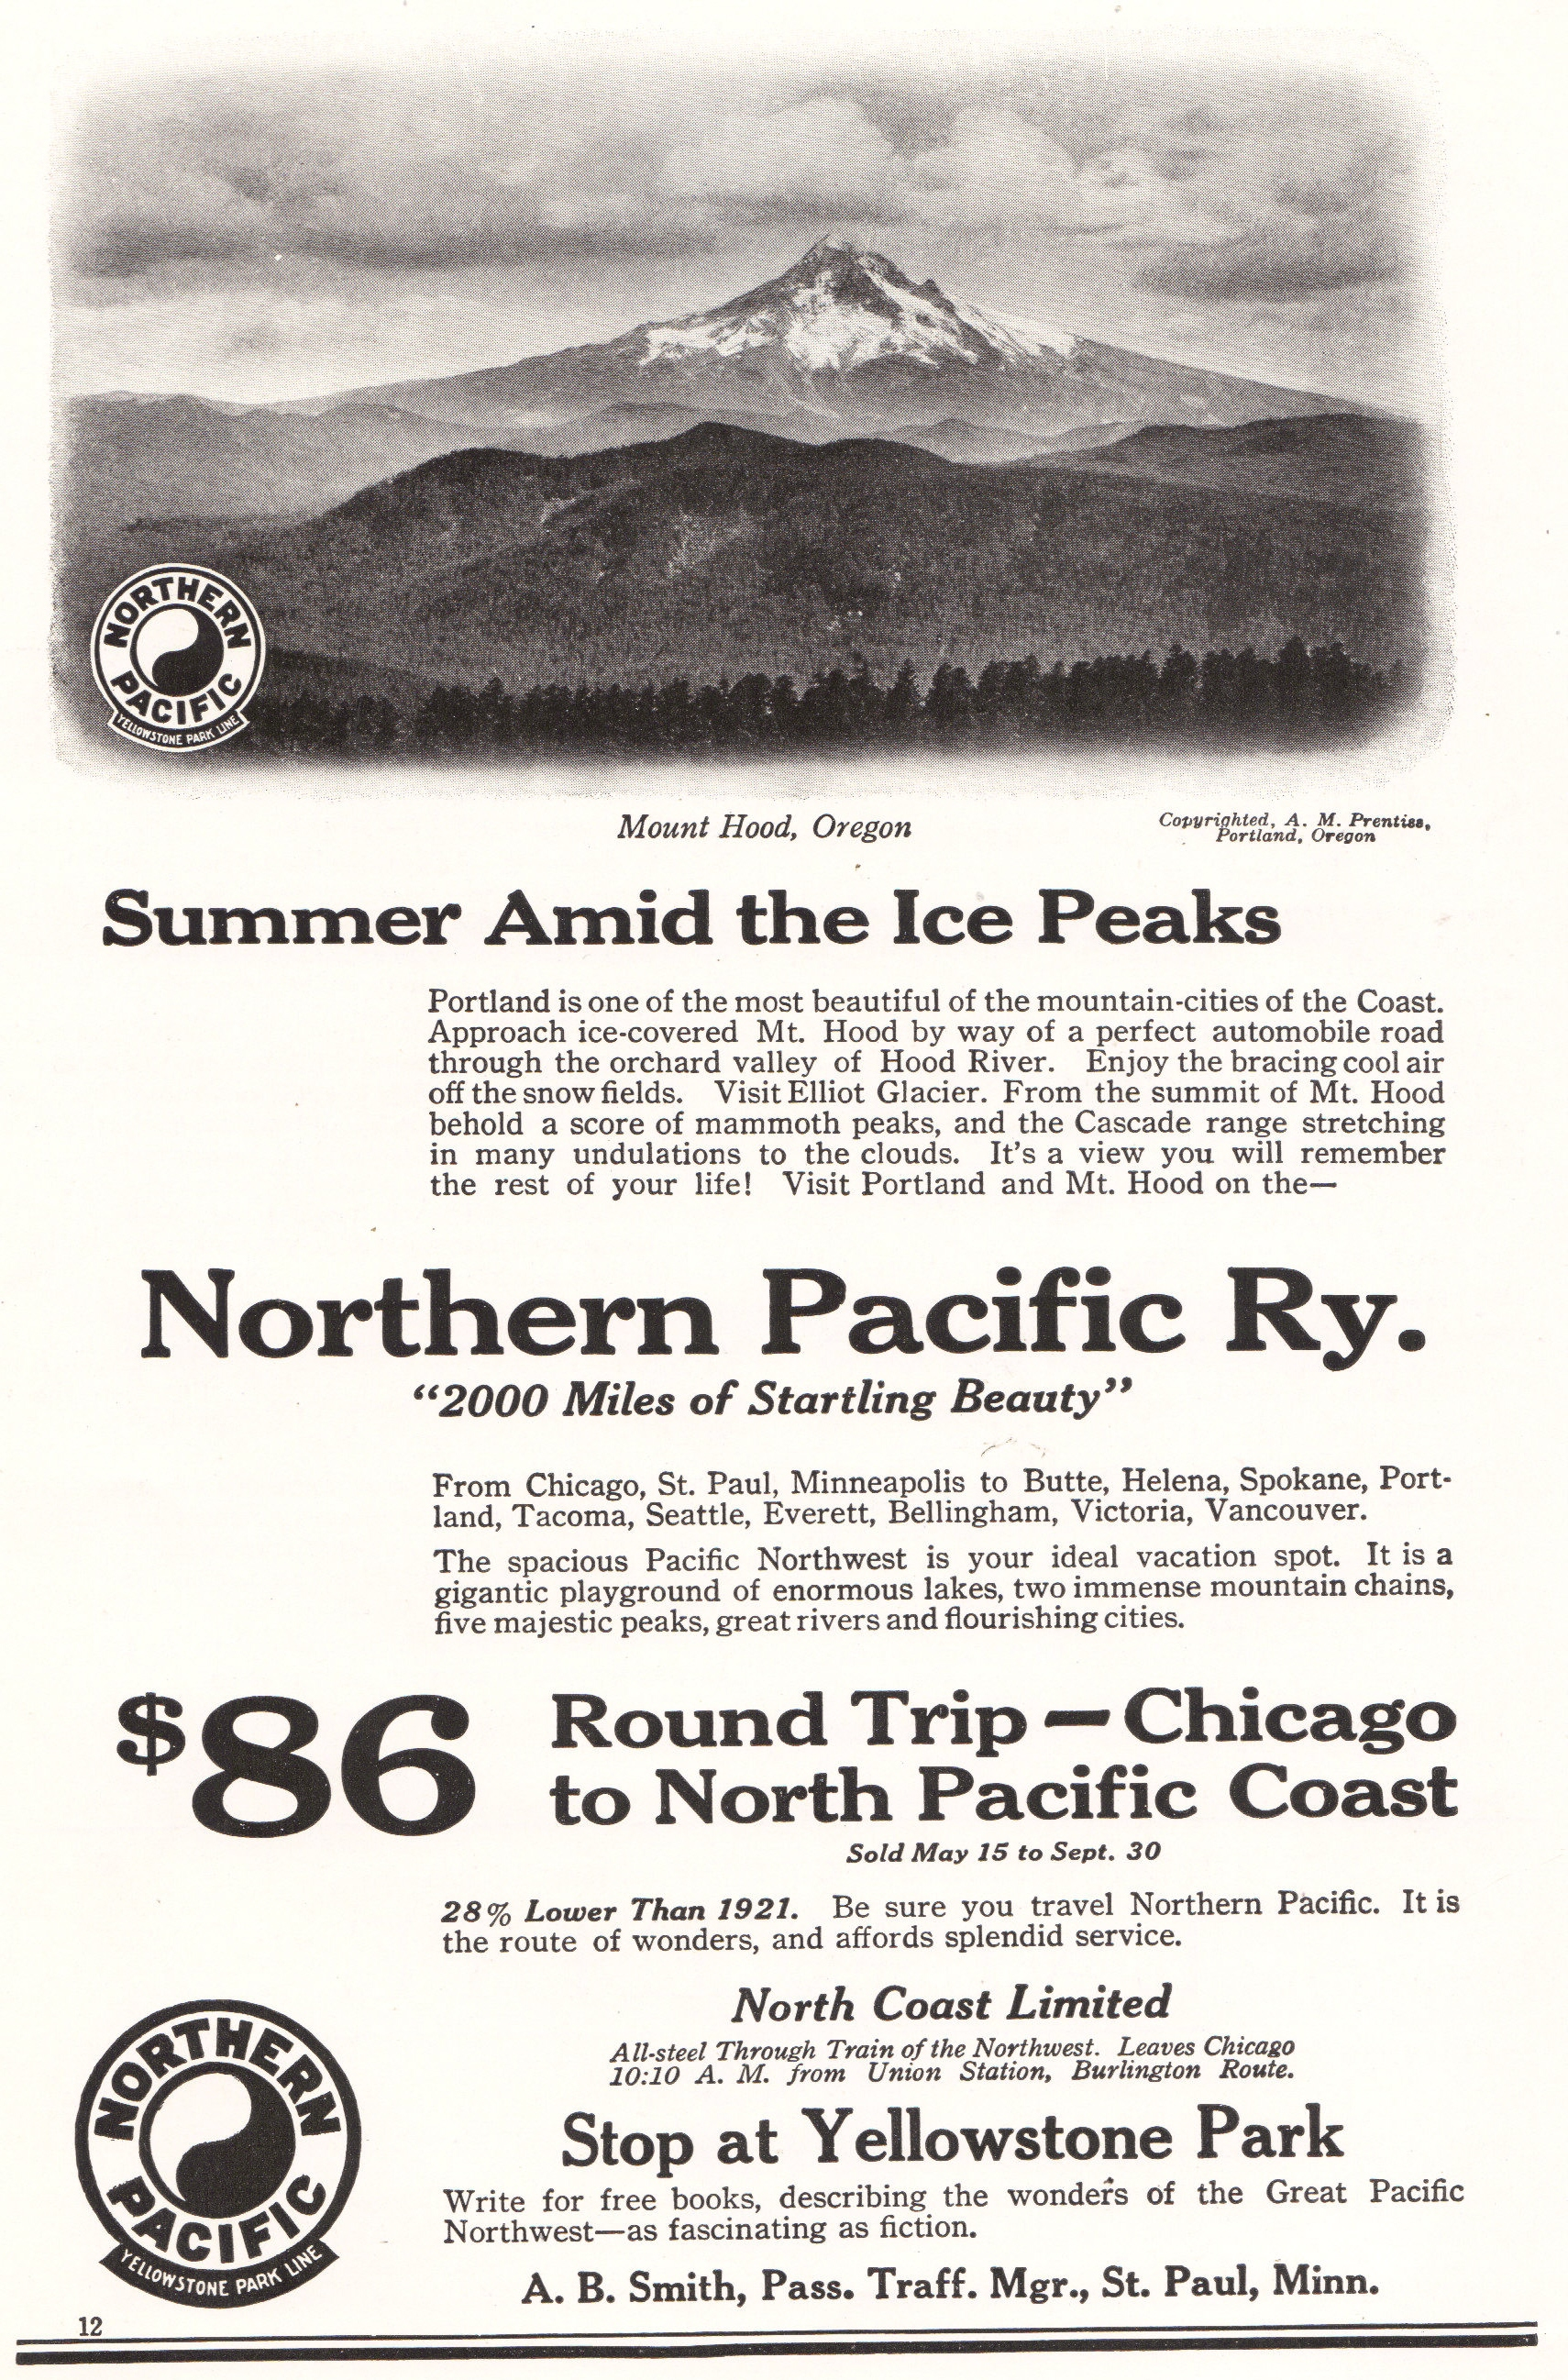 Northern Pacific Yellowstone Park Line